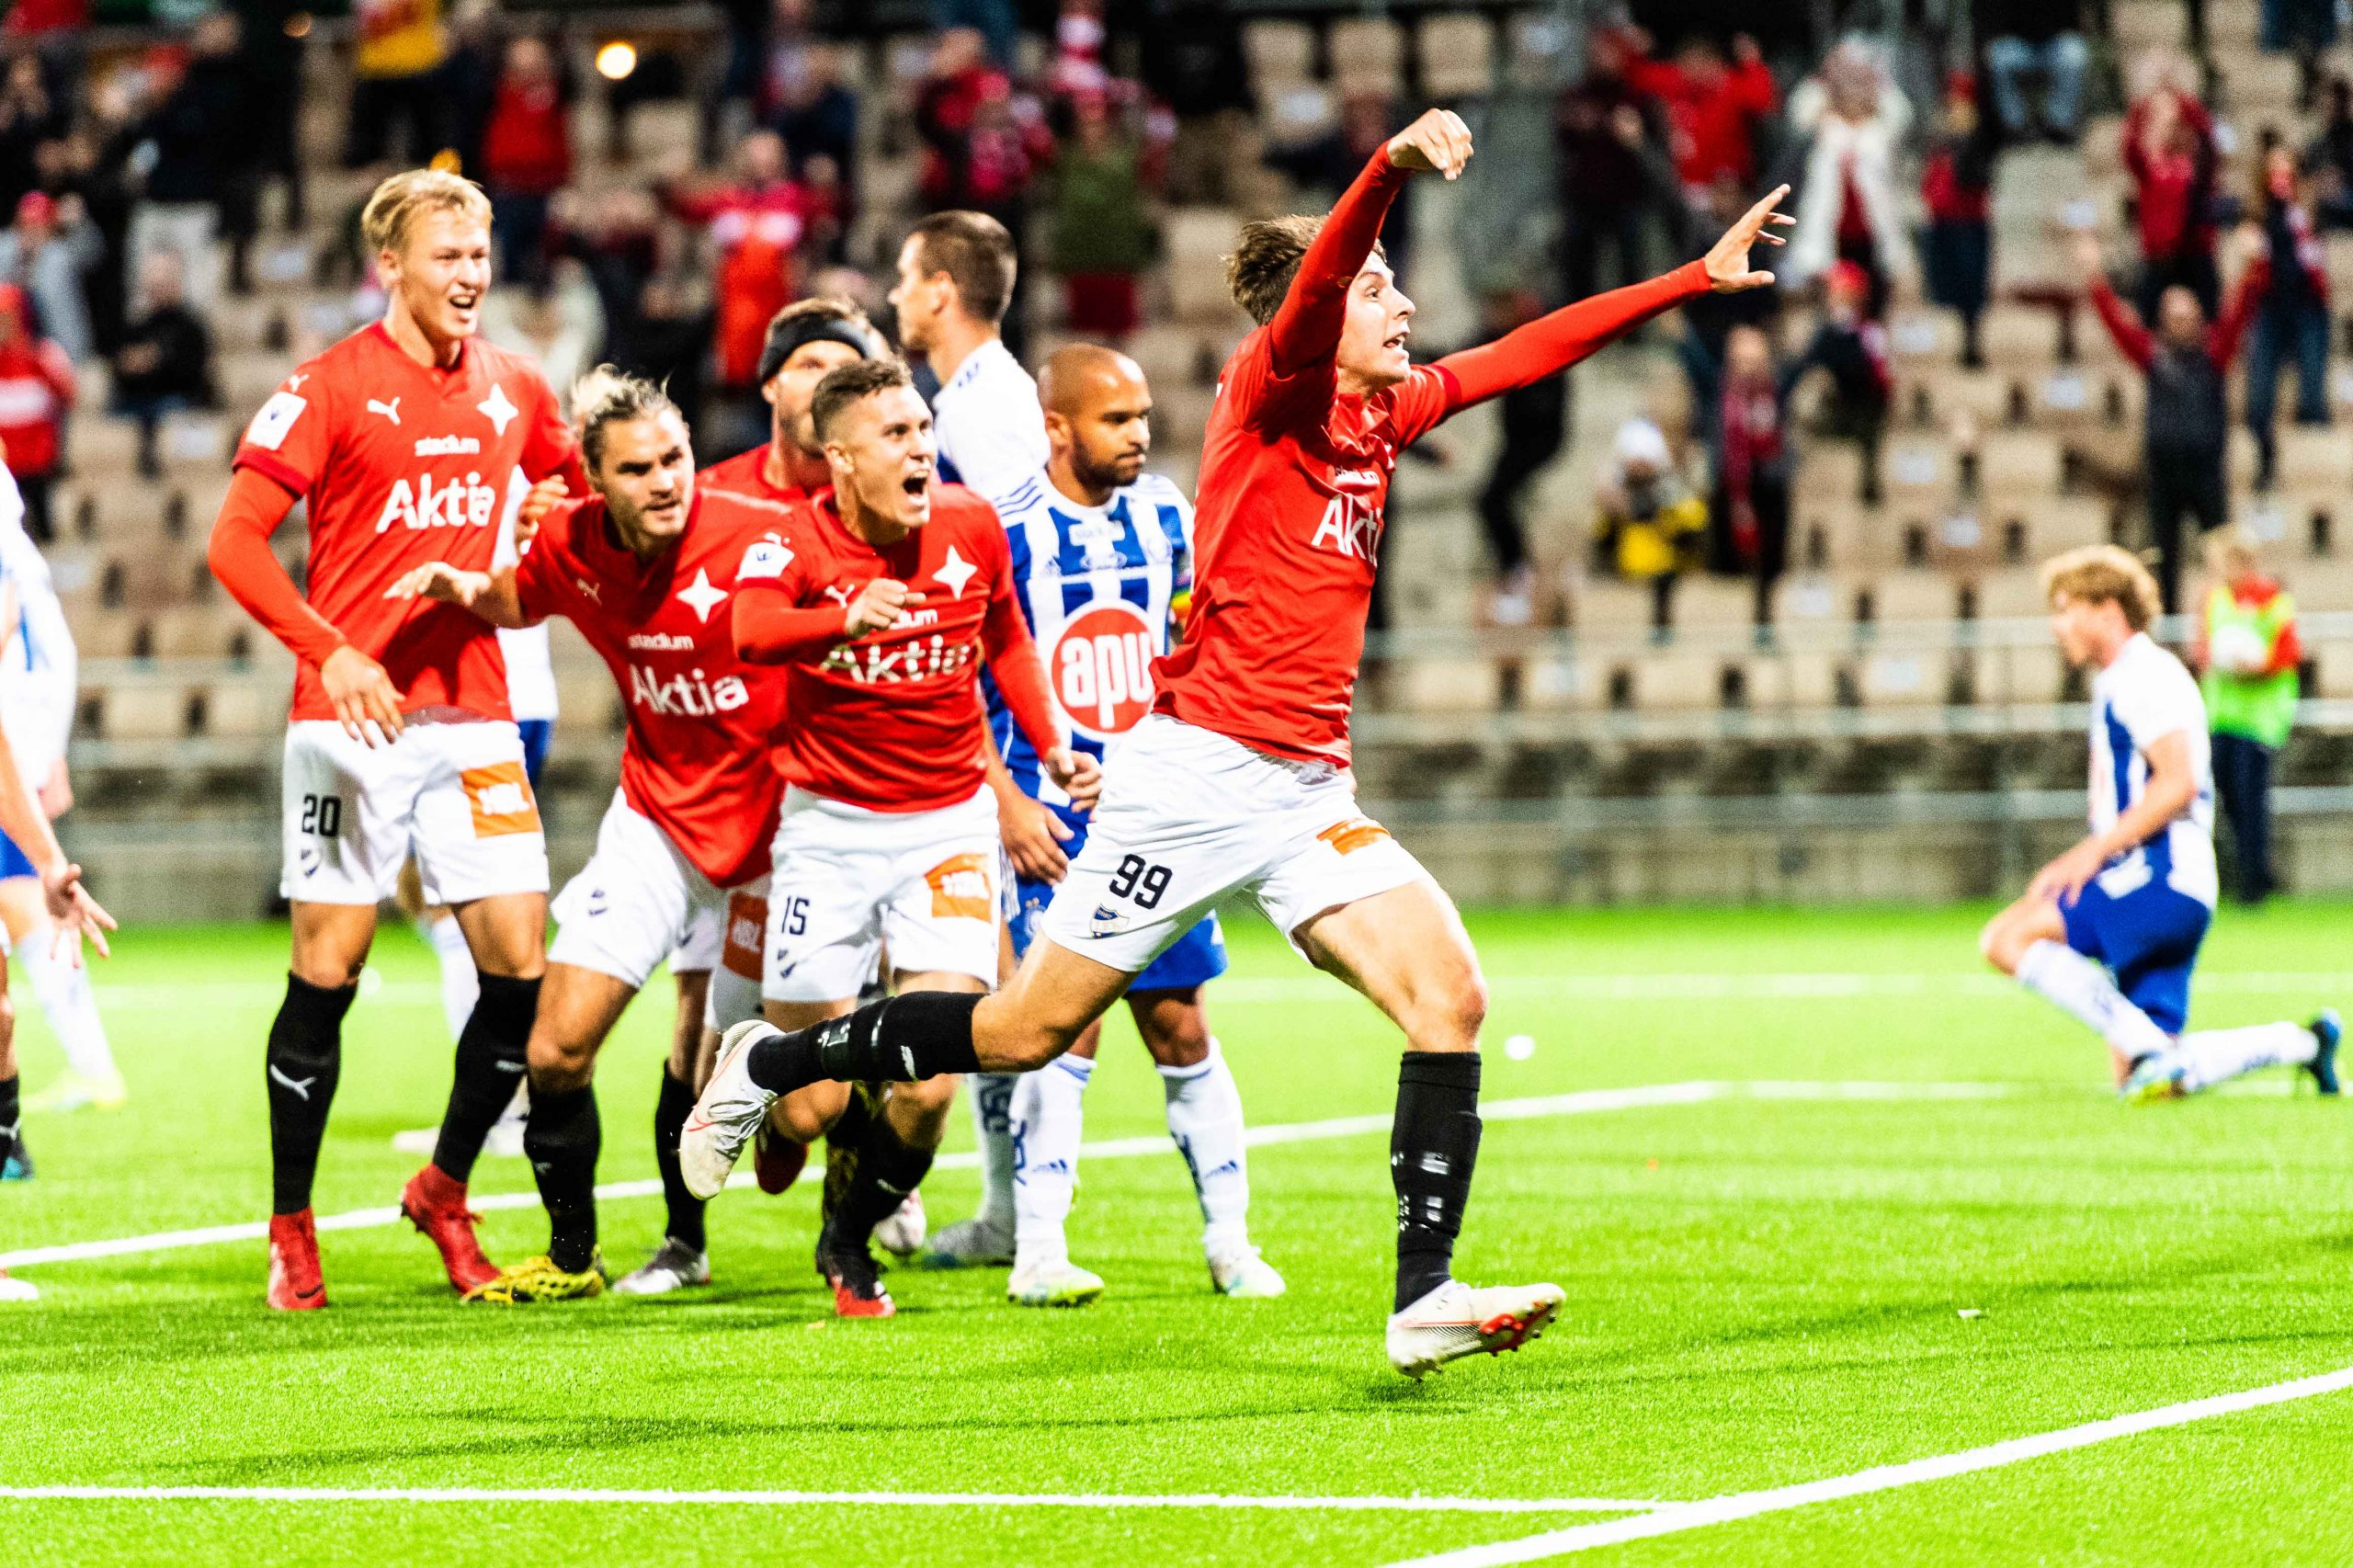 Derbywin, draws and more for HIFK in September